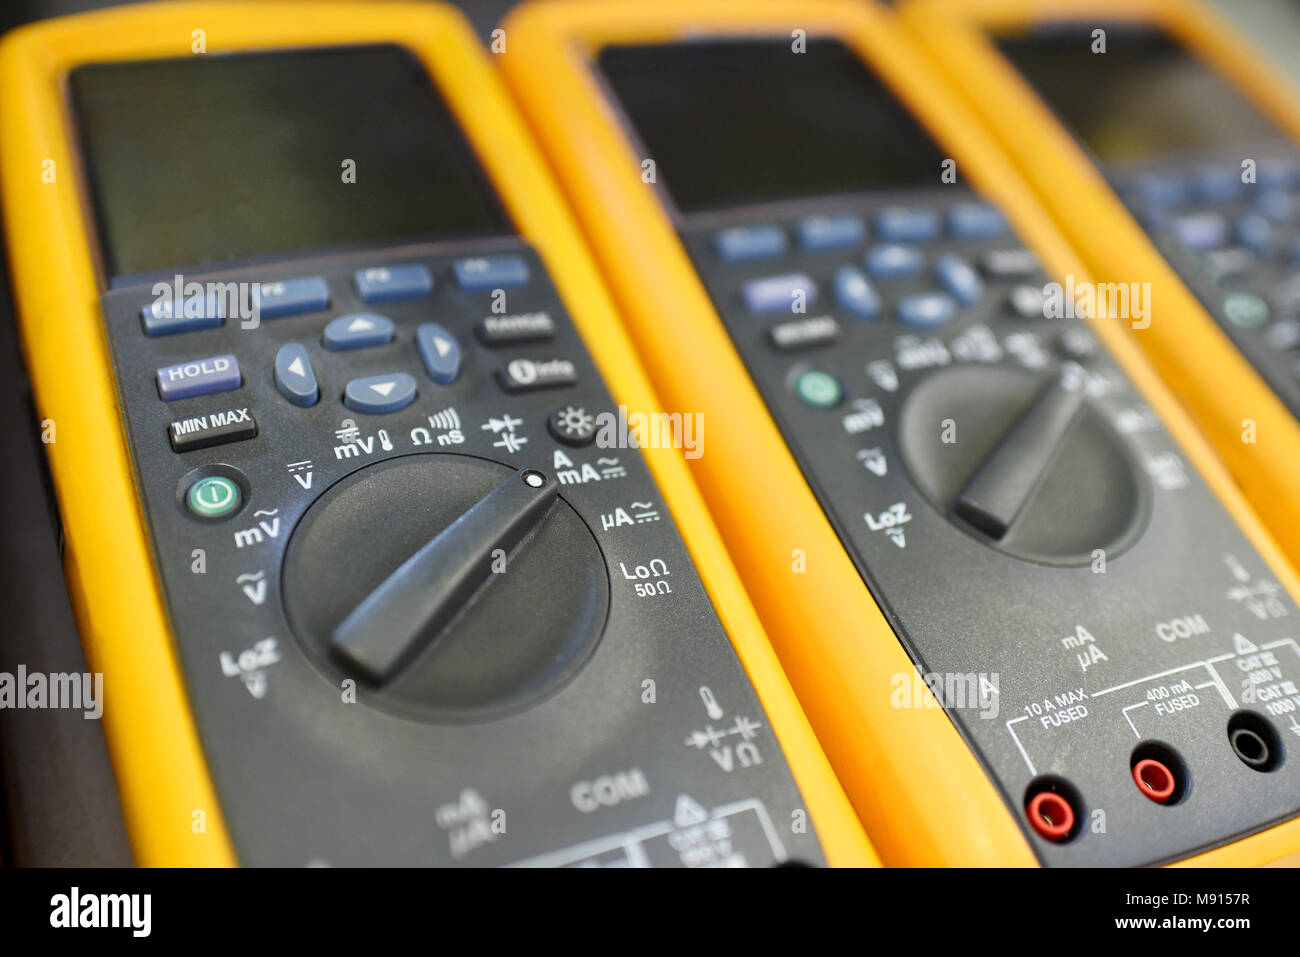 Close Up Digital Multimeter Stock Photos Electronic Multimeters View Of Yellow Or Multitester Image